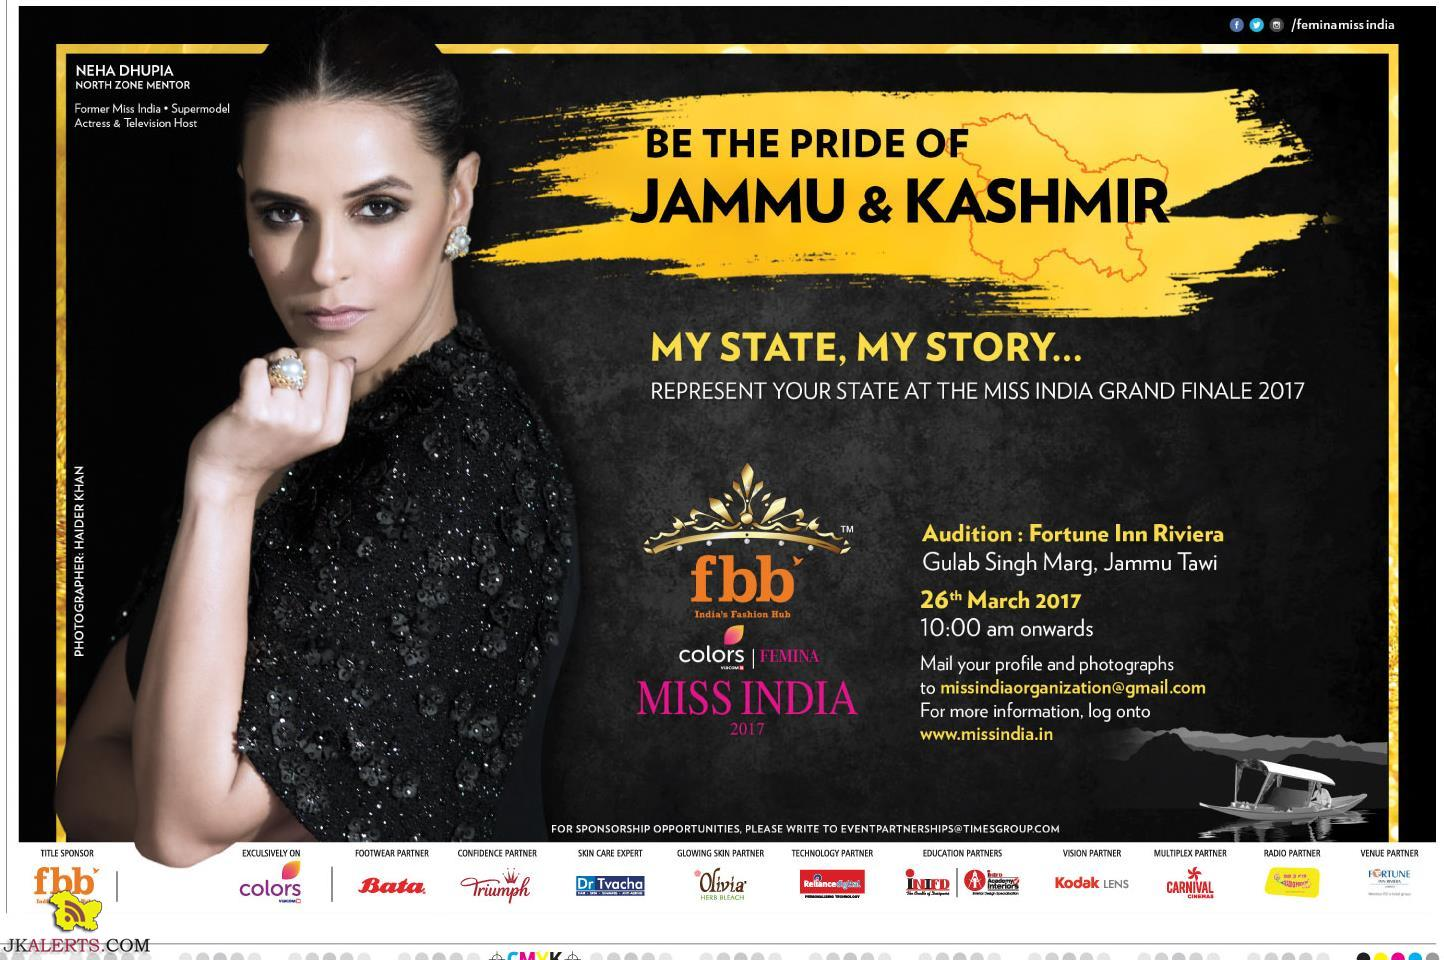 Miss India Audition in Jammu J&K